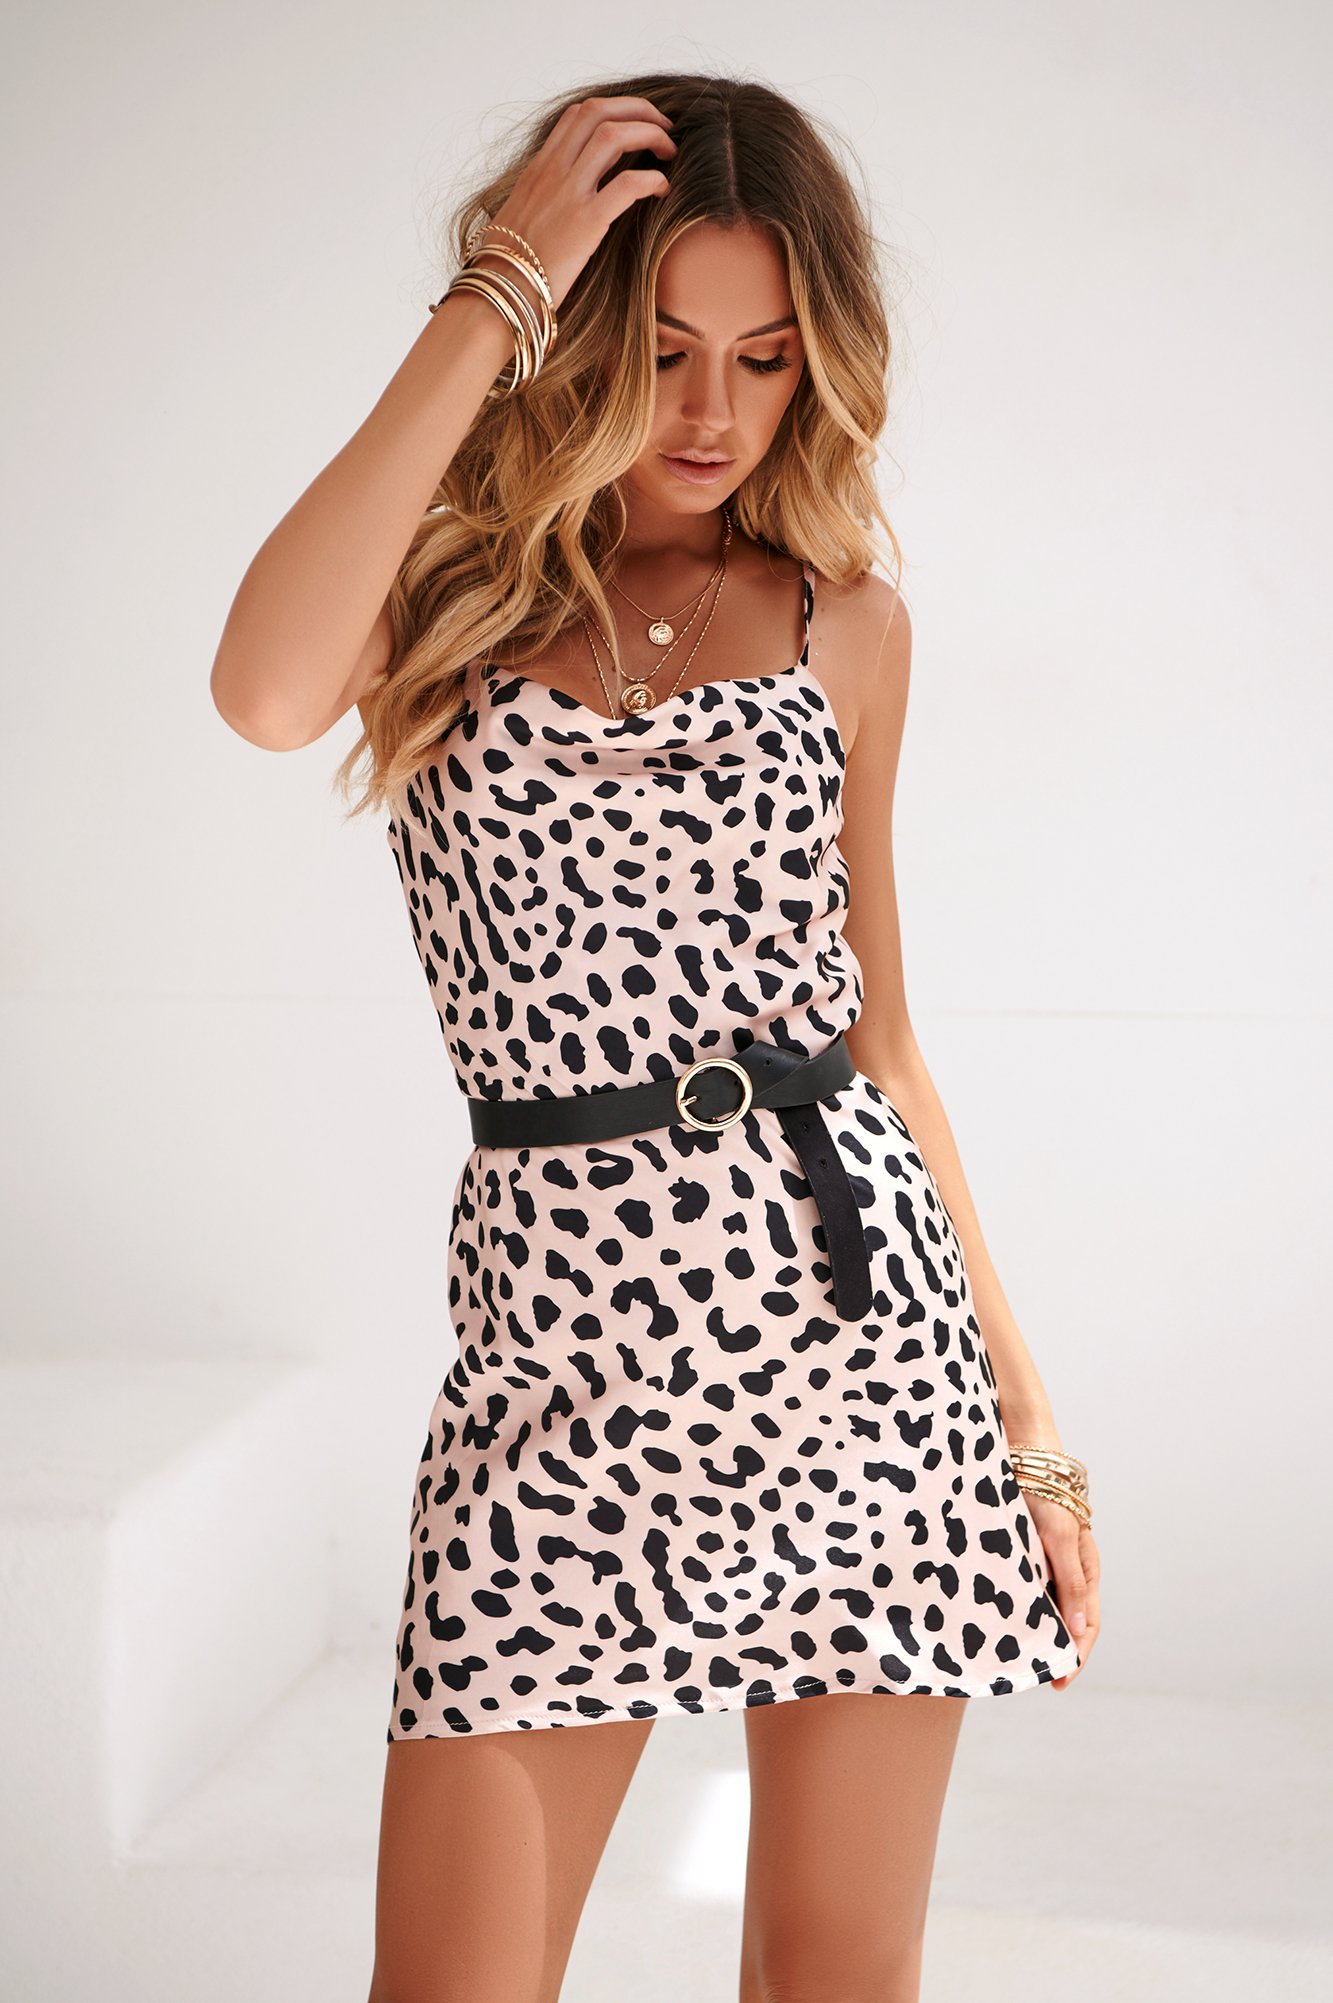 Meant To Be Mini Dress (Nude/Black)